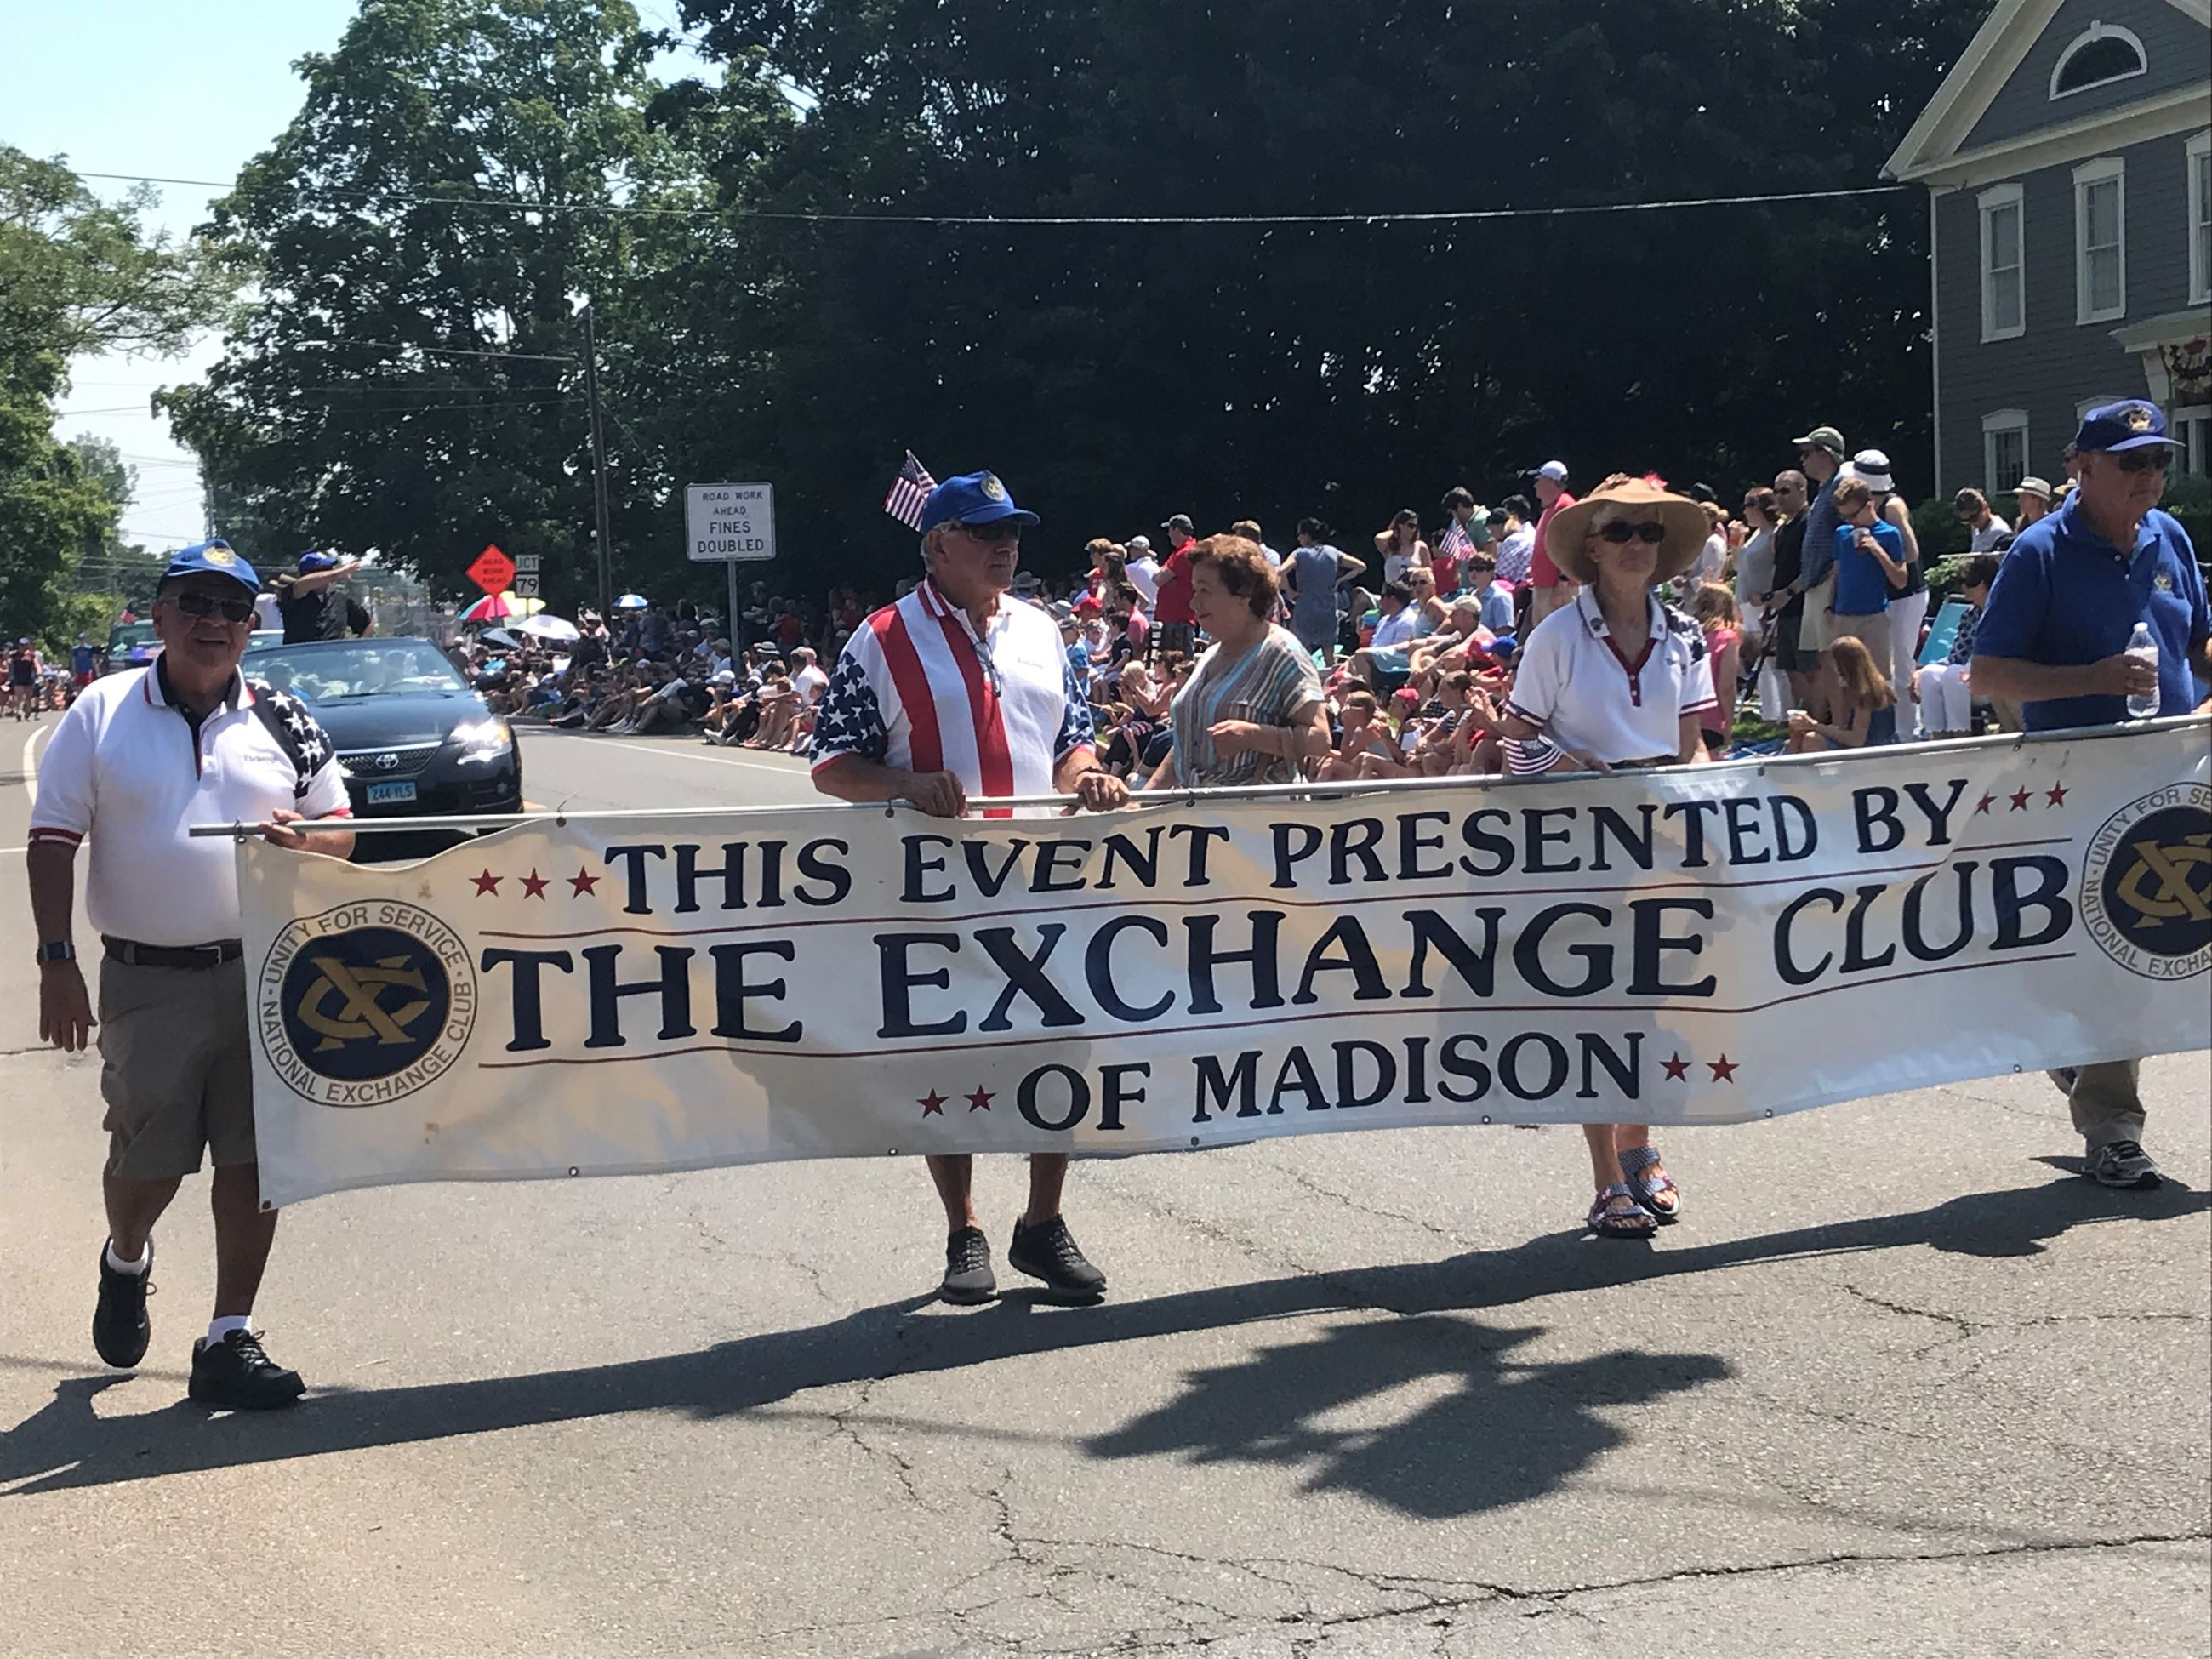 The Exchange Club of Madison CT